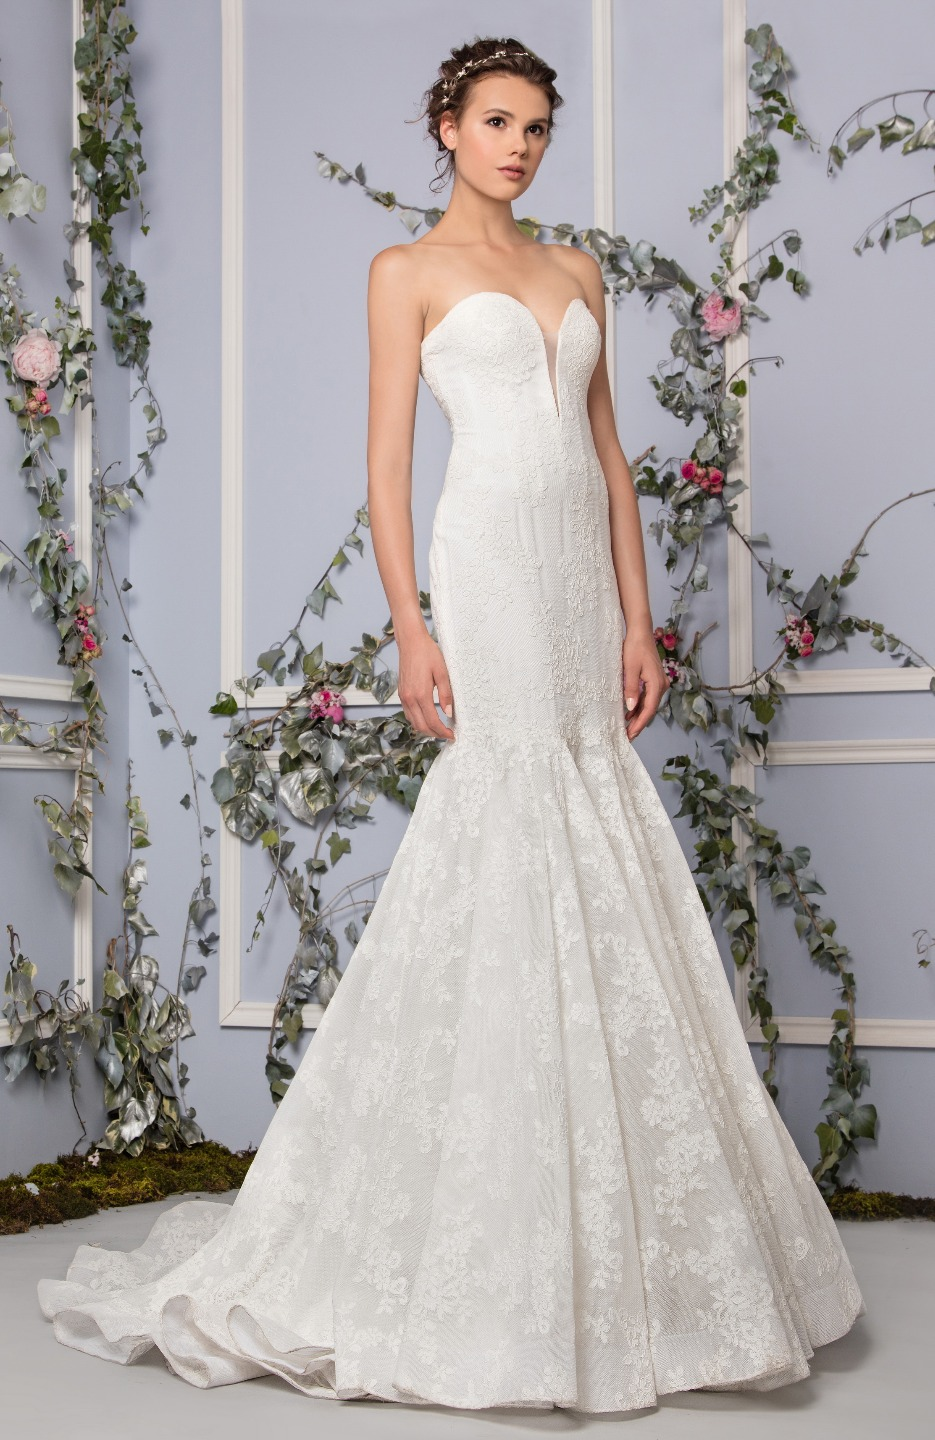 Romantic Mermaid Wedding Dress  Kleinfeld Bridal